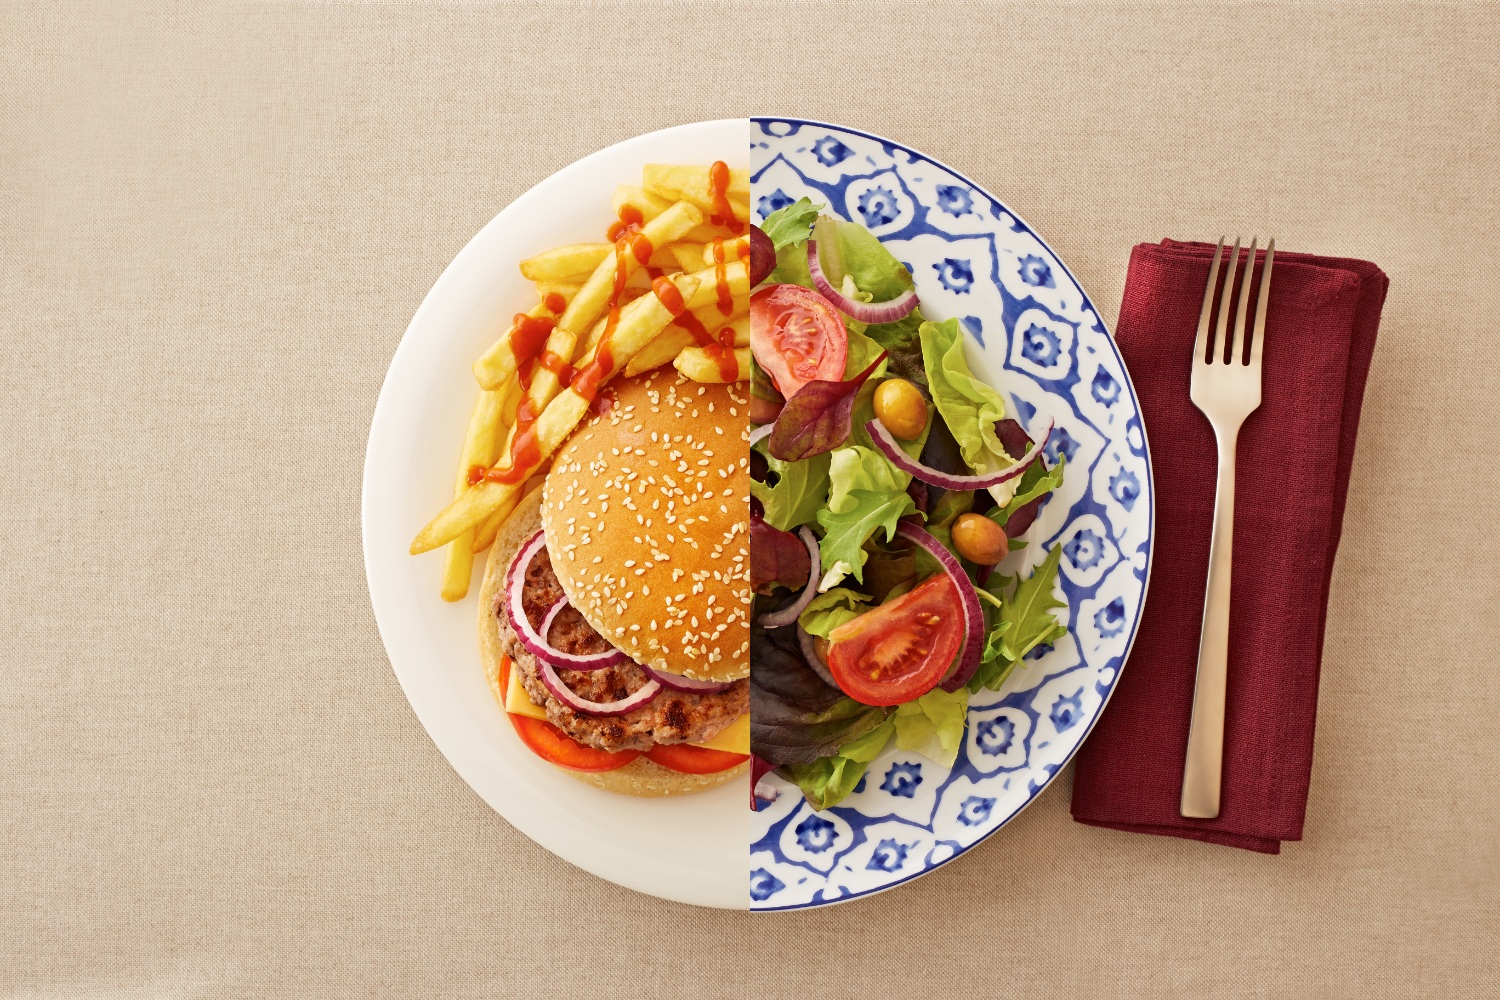 Healthy Eating vs Restrictive Diets: What Is Better for Weight Loss?